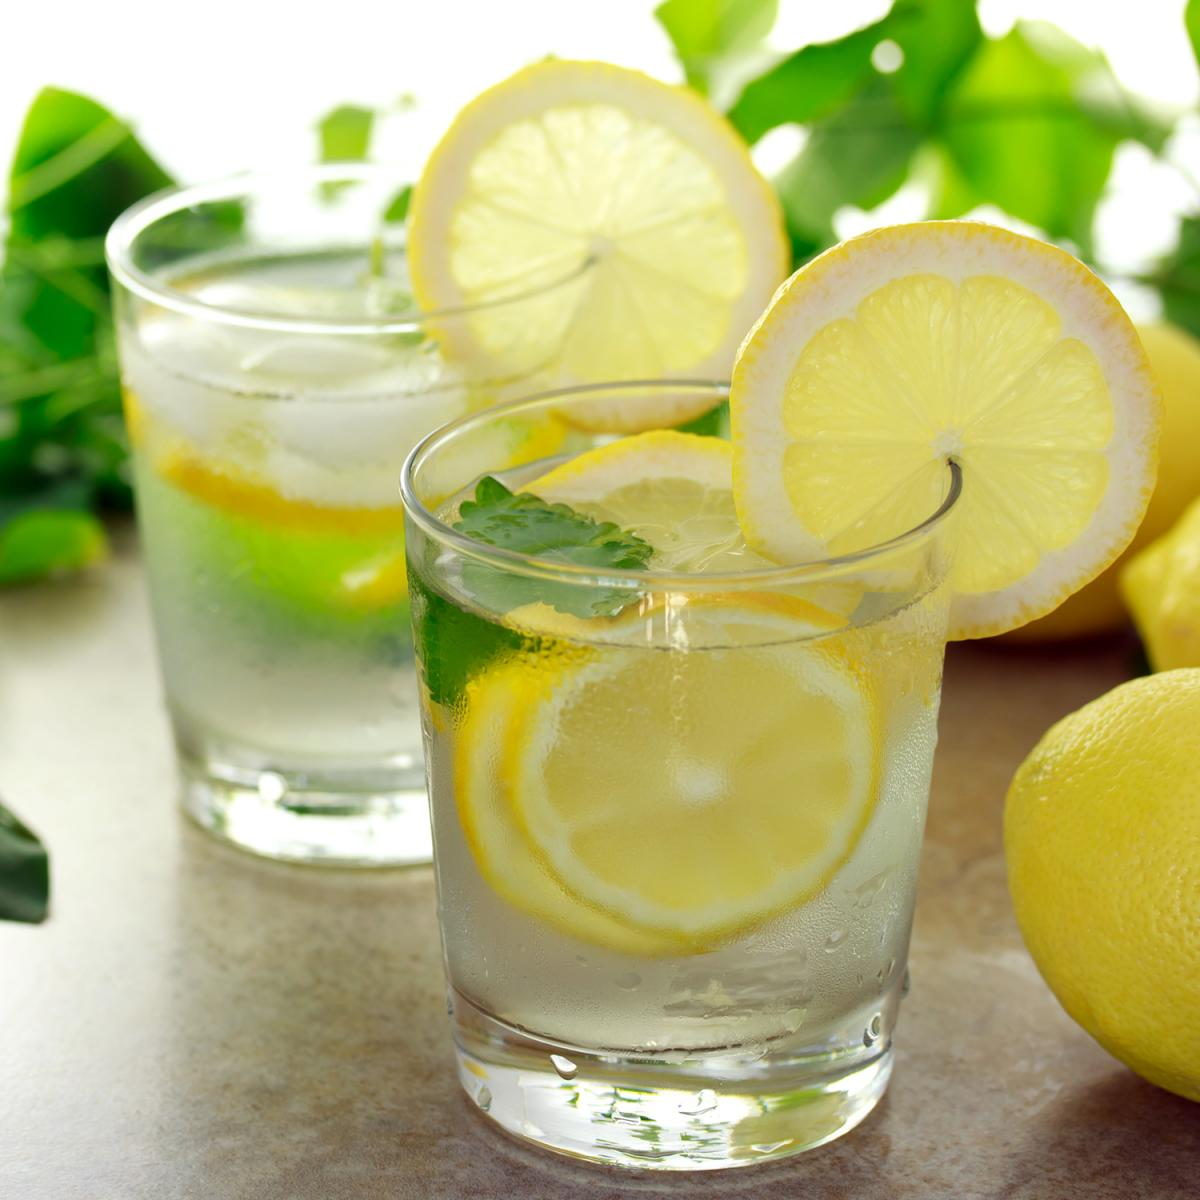 Glass of water with lemon slices and herbs